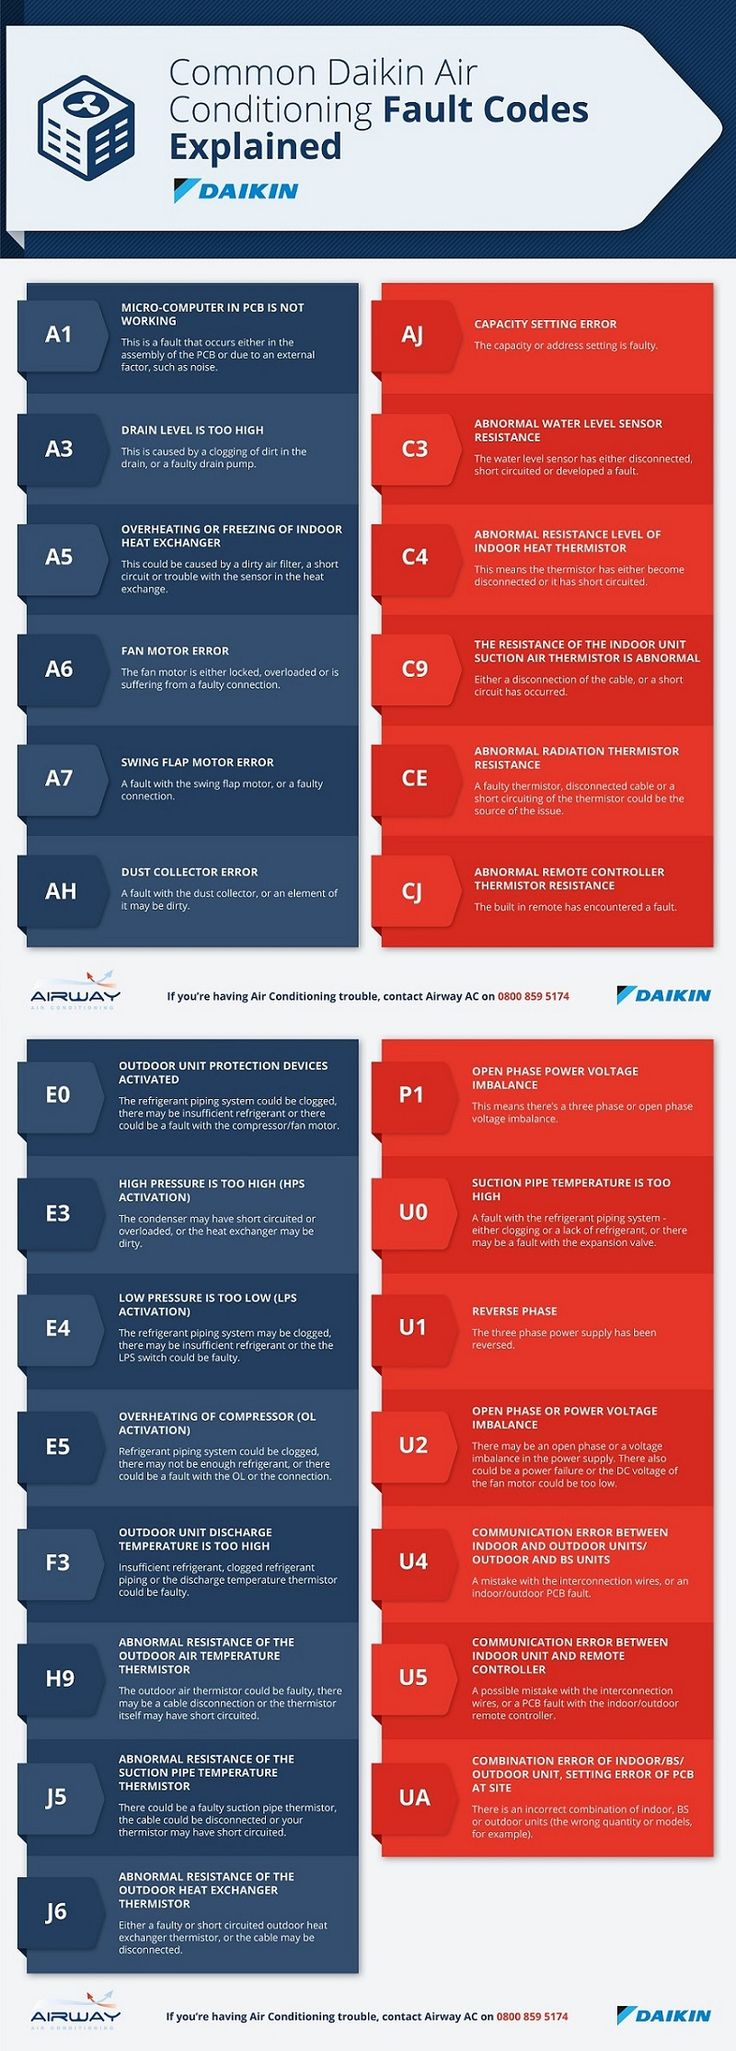 A h heating air conditioning service - Common Daikin Air Conditioning Fault Codes Explained Infographic